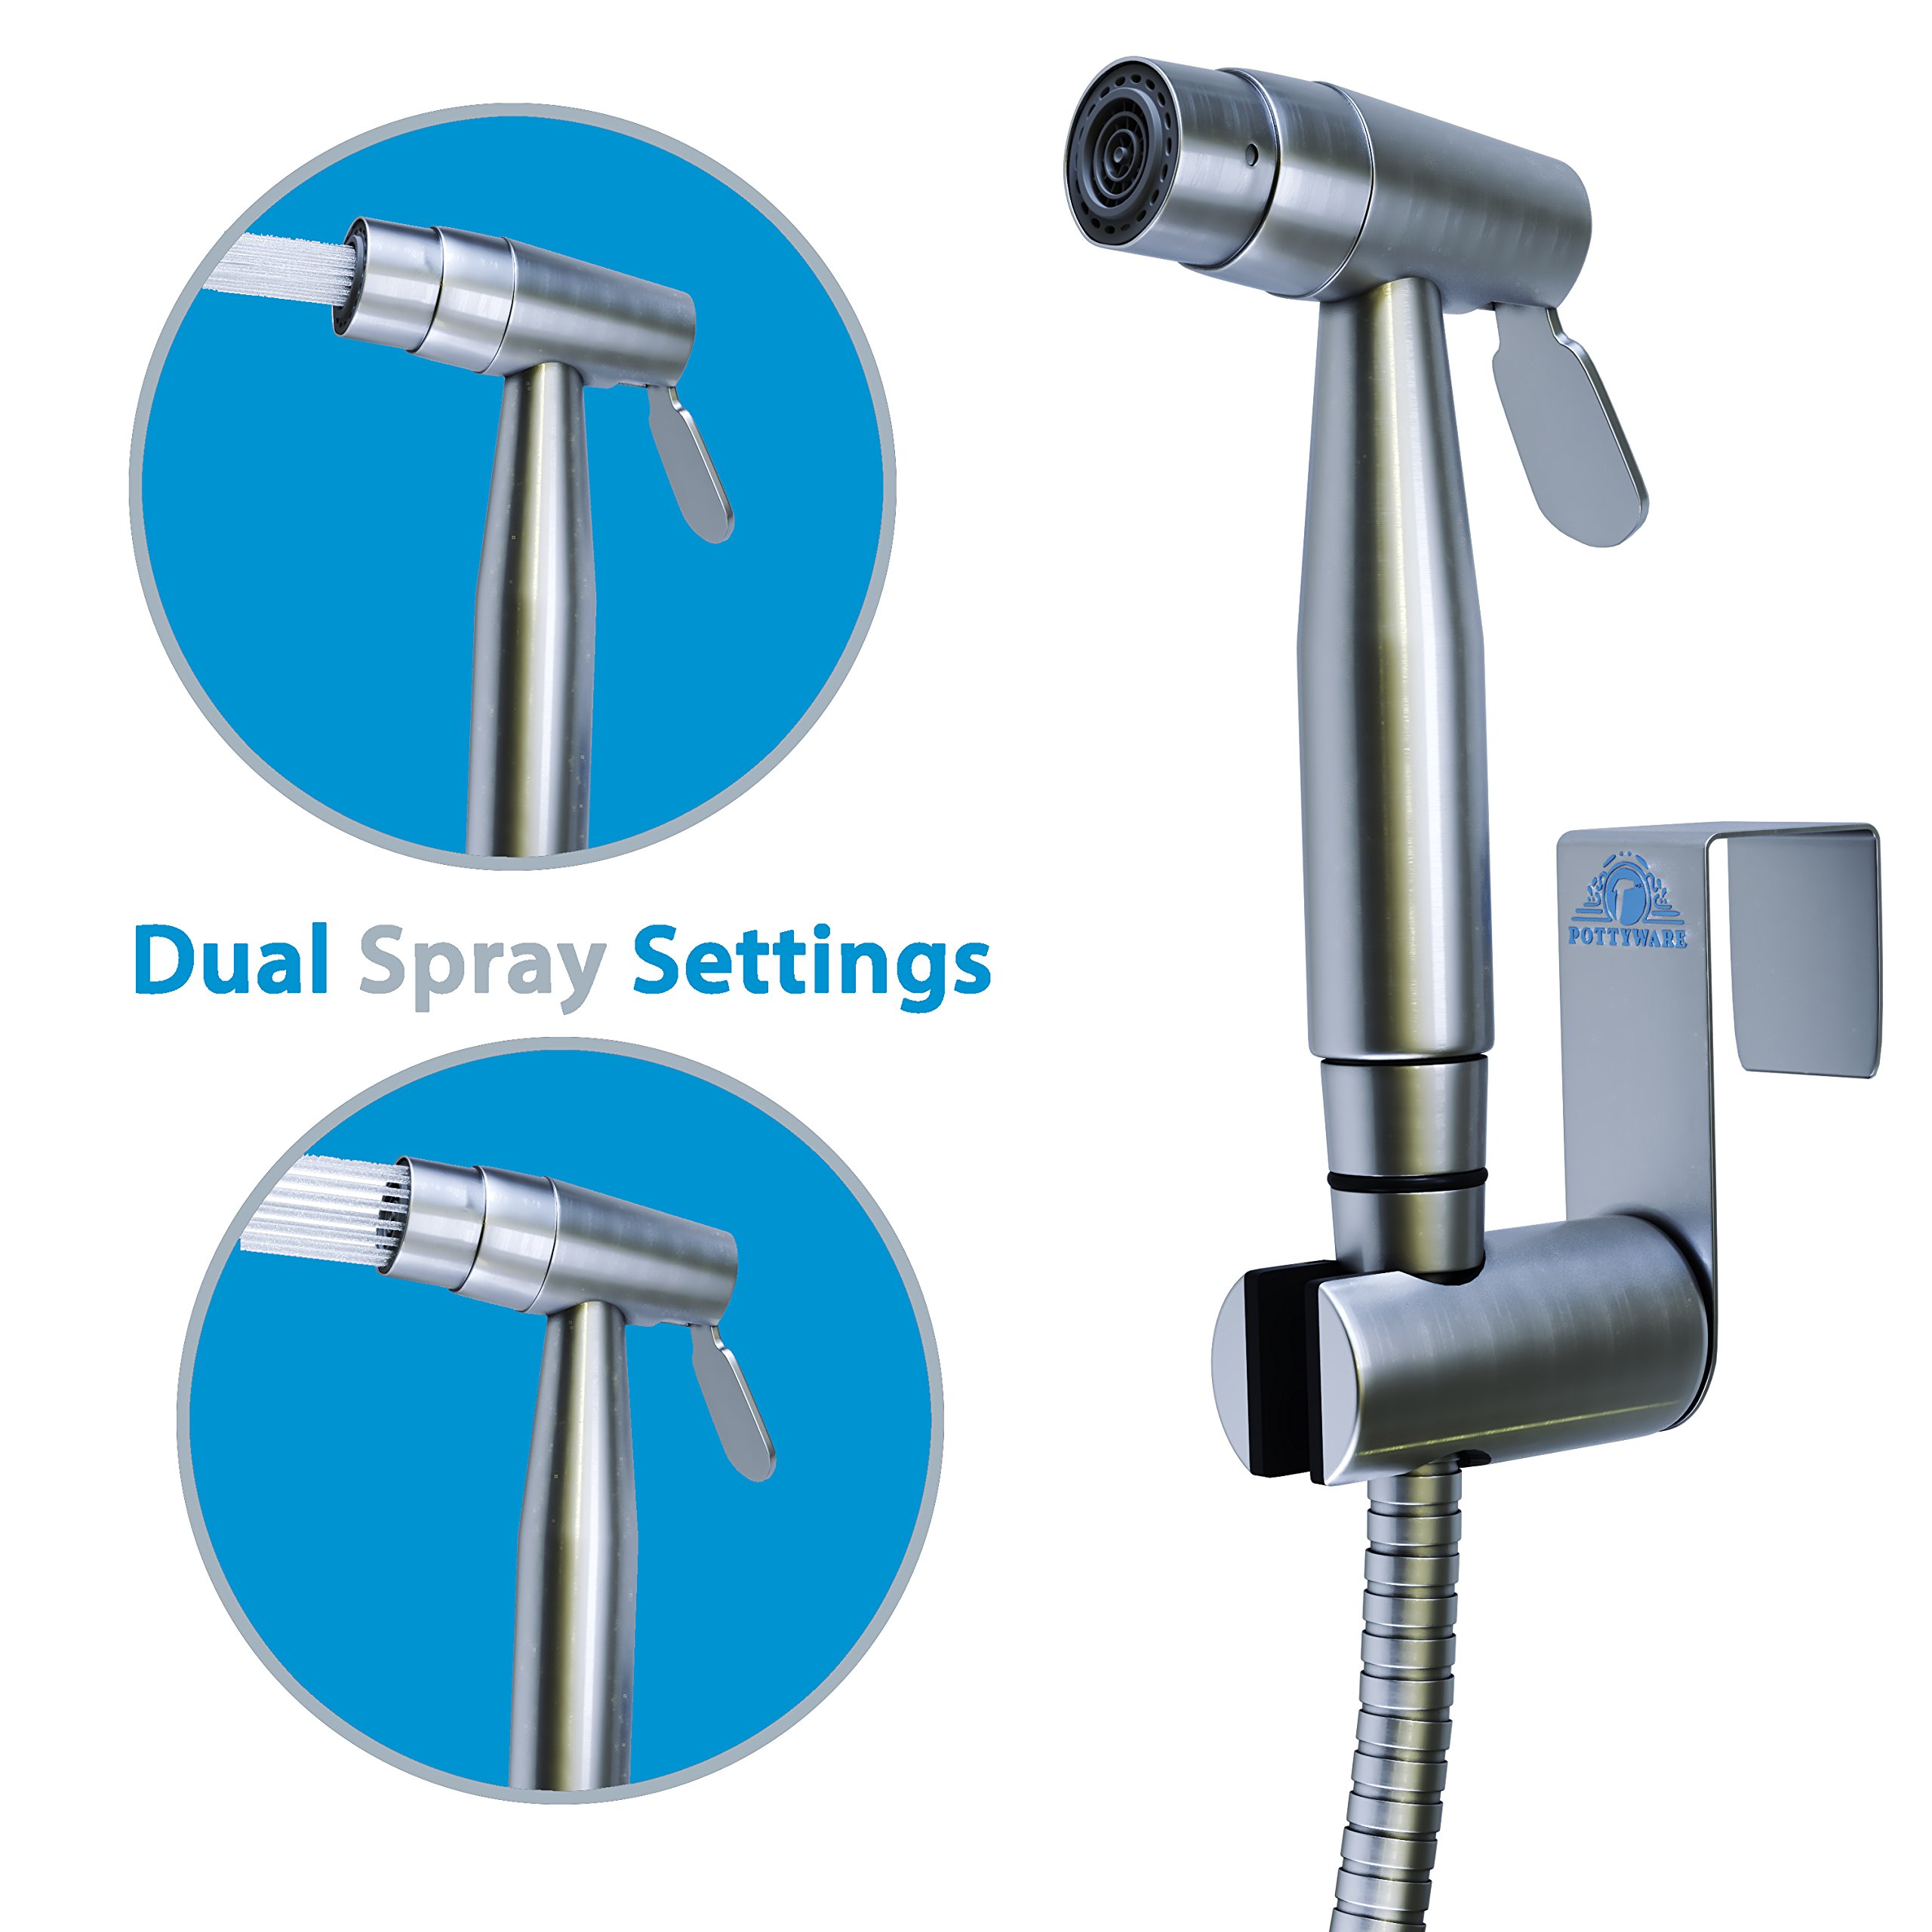 Handheld Bidet Sprayer for Toilet | 2 Spray Setting with Adjustable Pressure | Stainless Steel Hand Held Bathroom Shower Shattaf Hose for Hygienic Cleansing by Pottyware